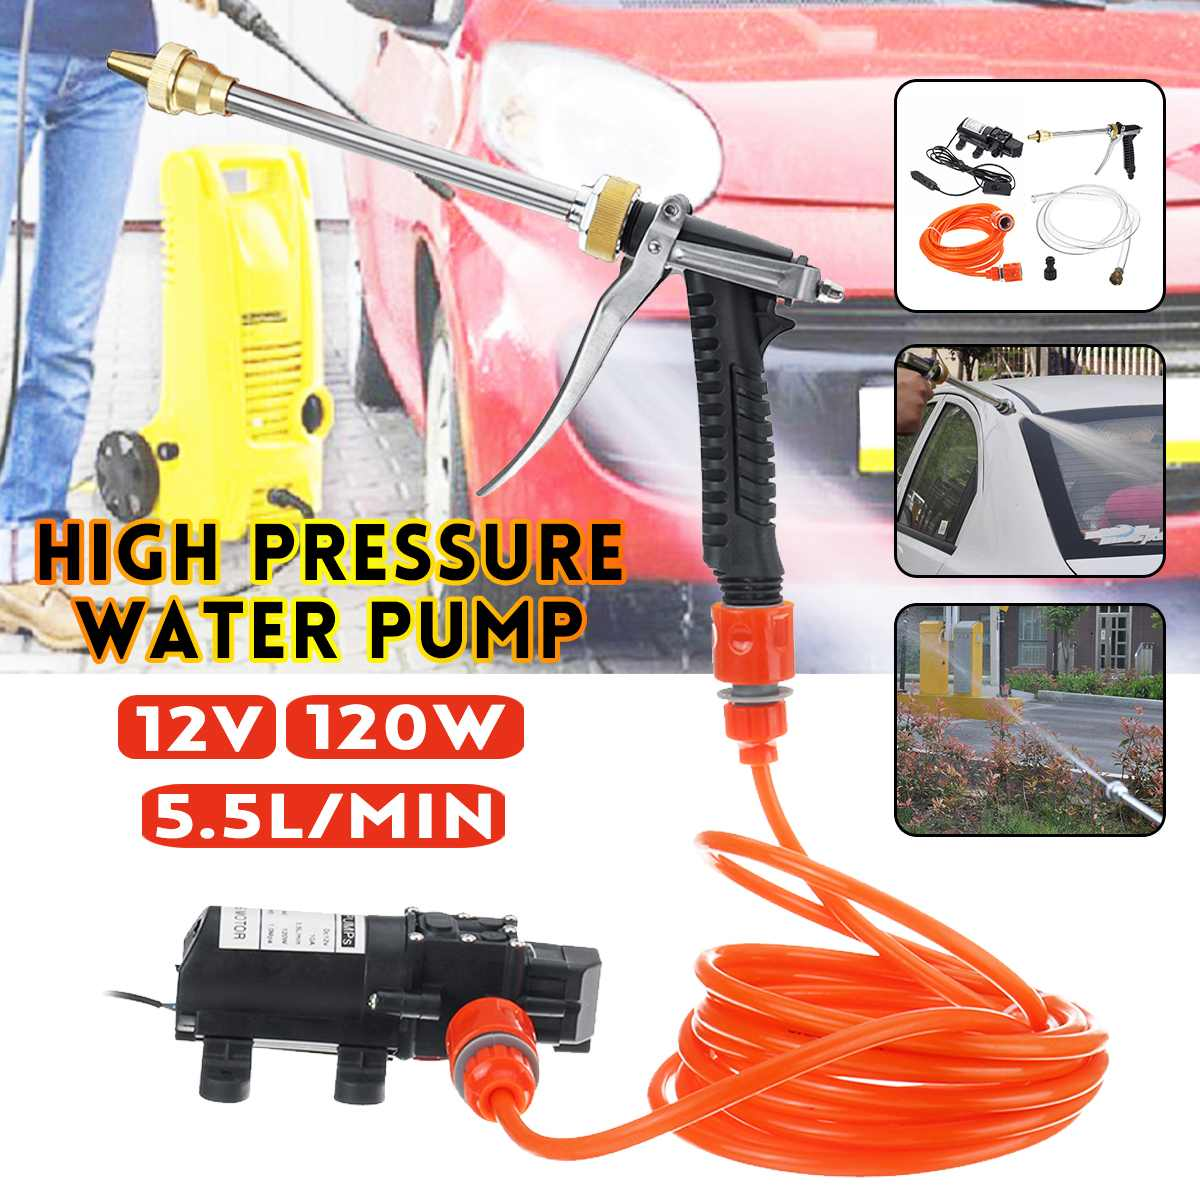 12V 120W High Pressure Car Cleaner Car Washer Guns Pump Electric Cleaning Auto Device Car Care Portable Washing Machine Car Washer Automobiles & Motorcycles - title=